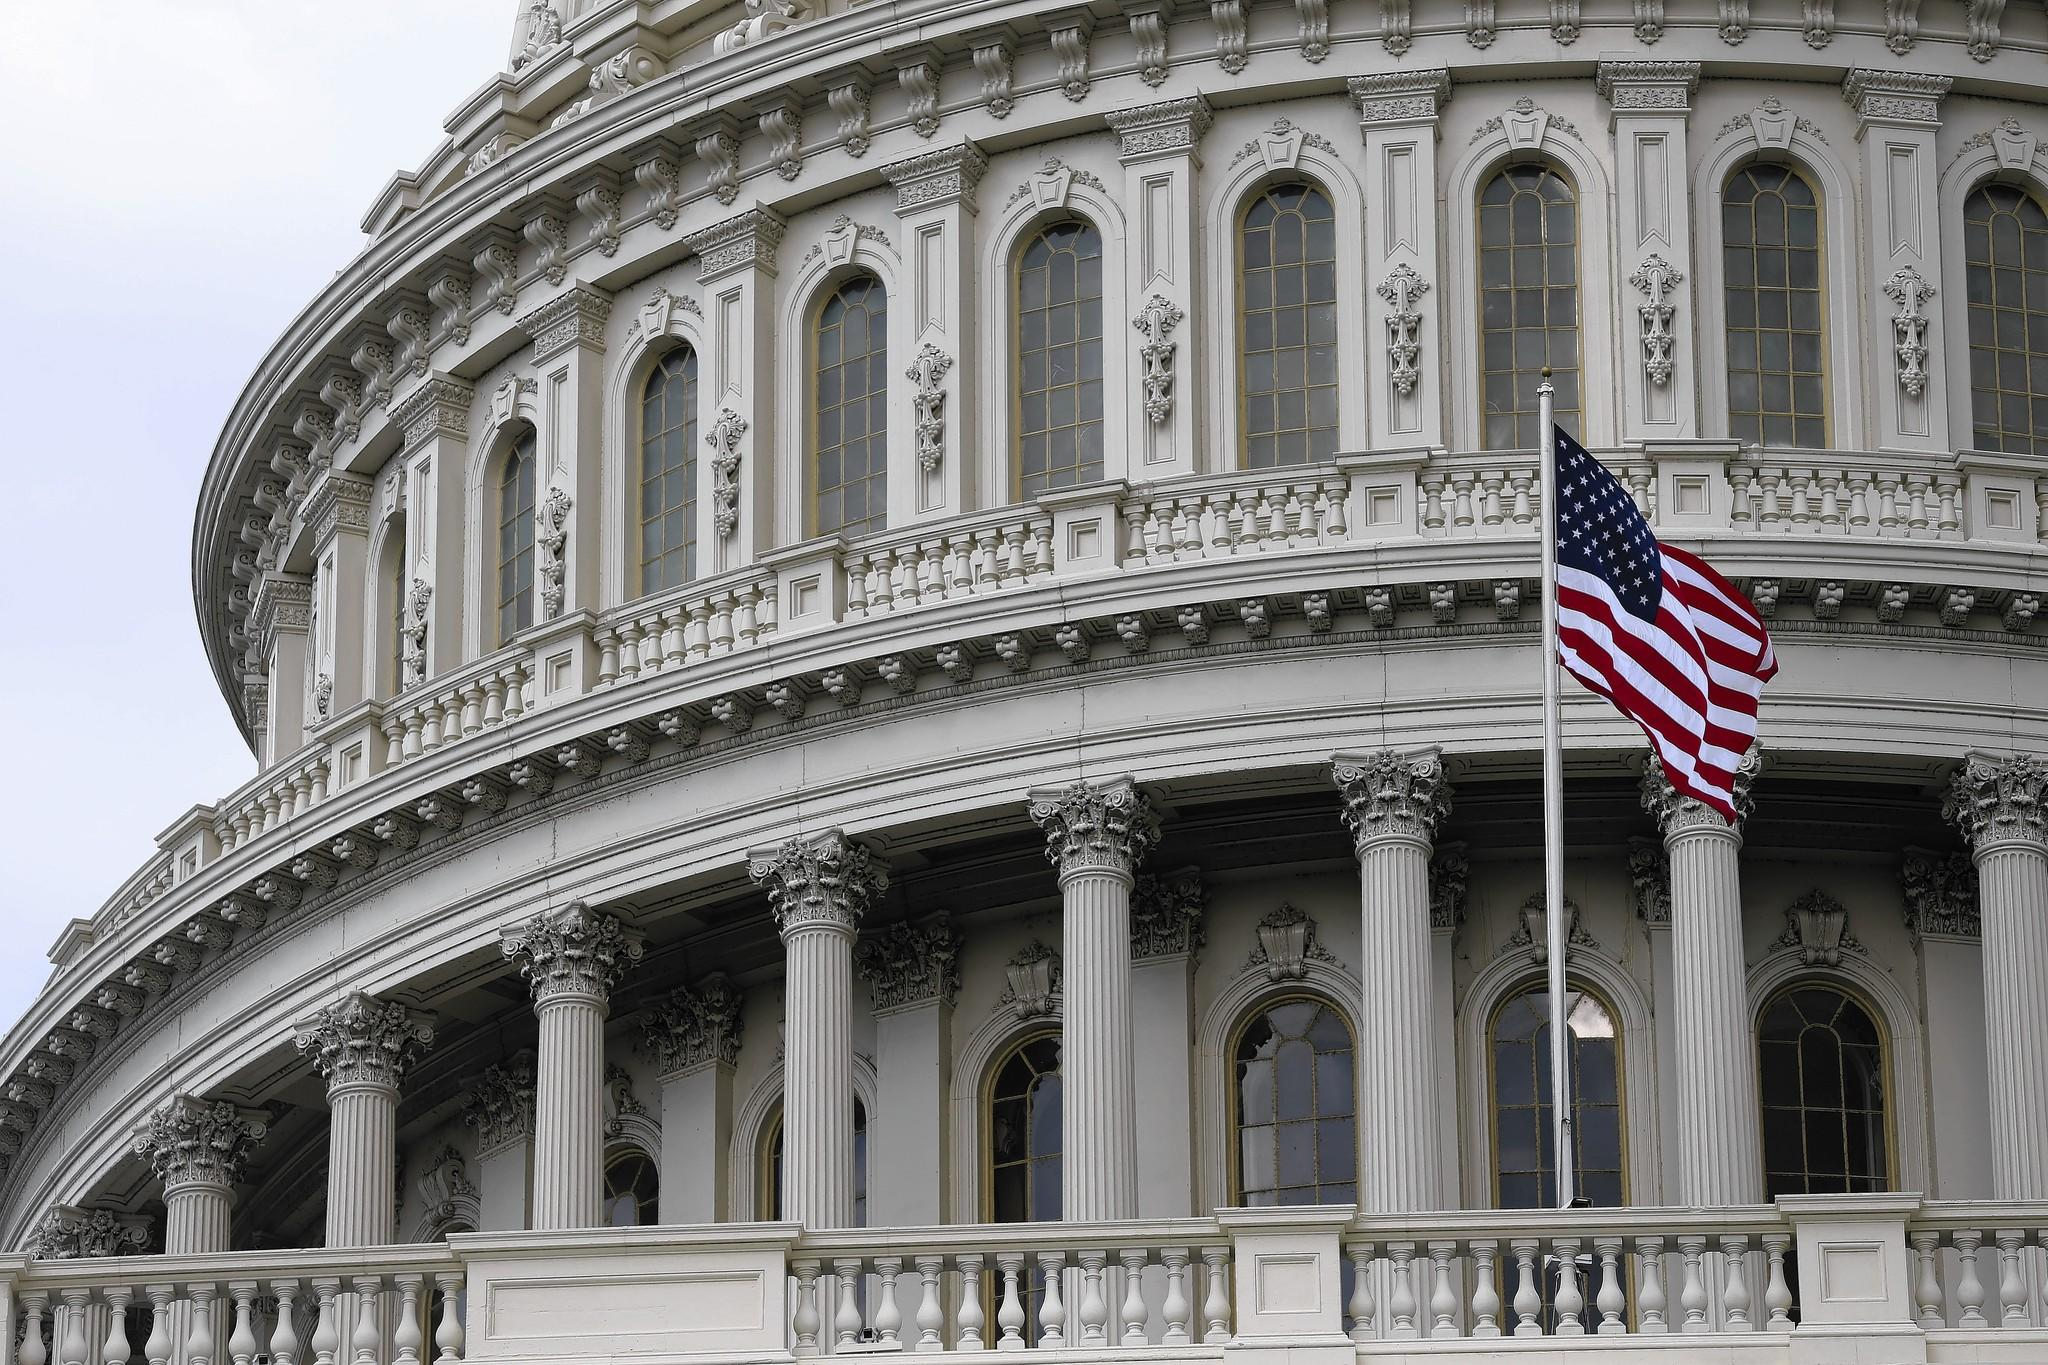 There was some good news in the swift passage of a gargantuan spending bill through the House and Senate. It means business as usual is returning to the Capitol. Even this is better than the crises and brinkmanship of the last three years.